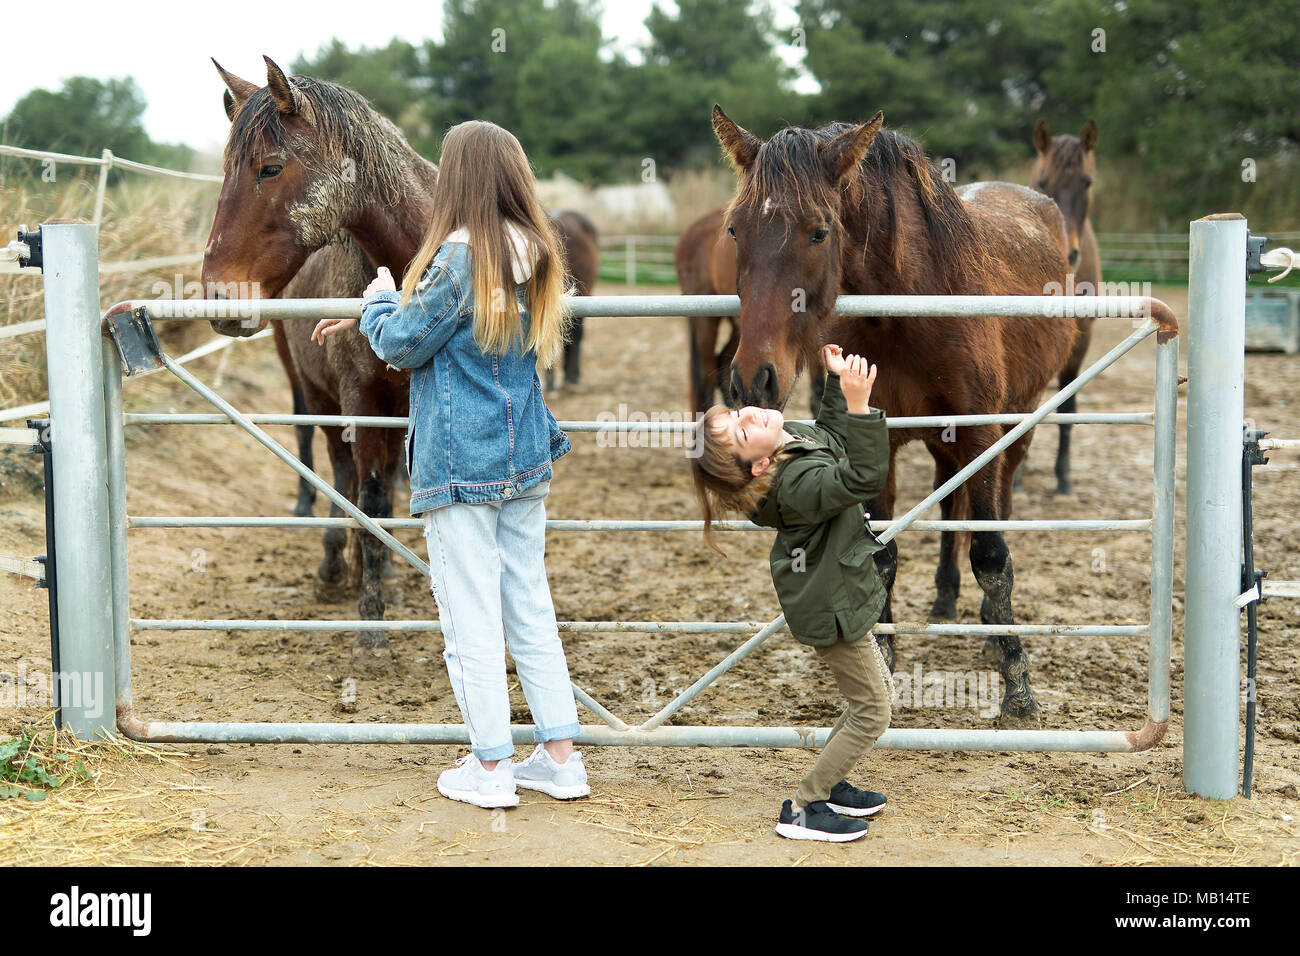 Horse giving a kiss to a 10-year-old girl in a shelter in Rojales, province of Alicante in Spain. - Stock Image